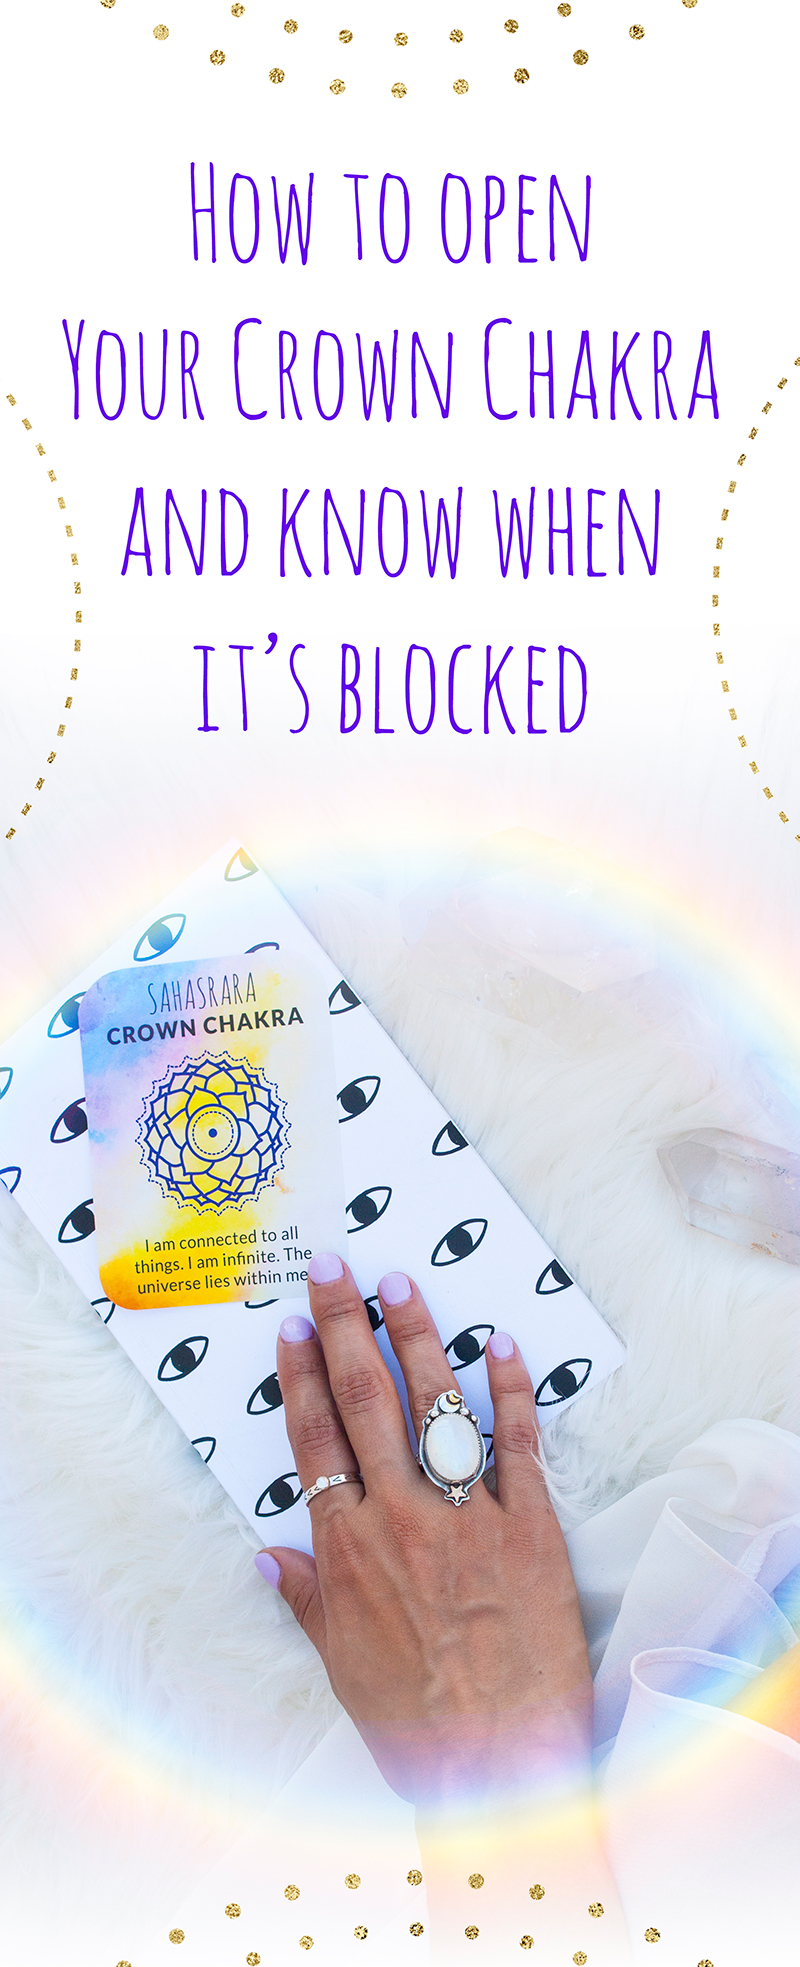 Pic2-how-to-open-your-crown-chakra-and-know-when-its-blocked